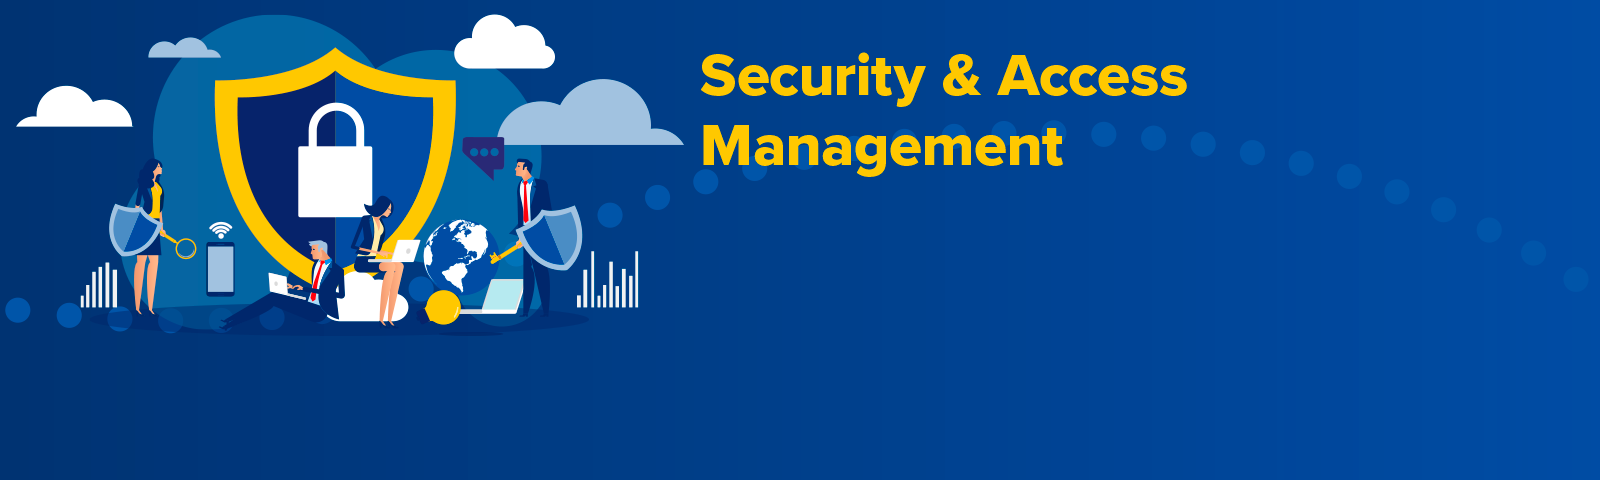 Security and Access Management - SAP Security Threat Landscape 2021